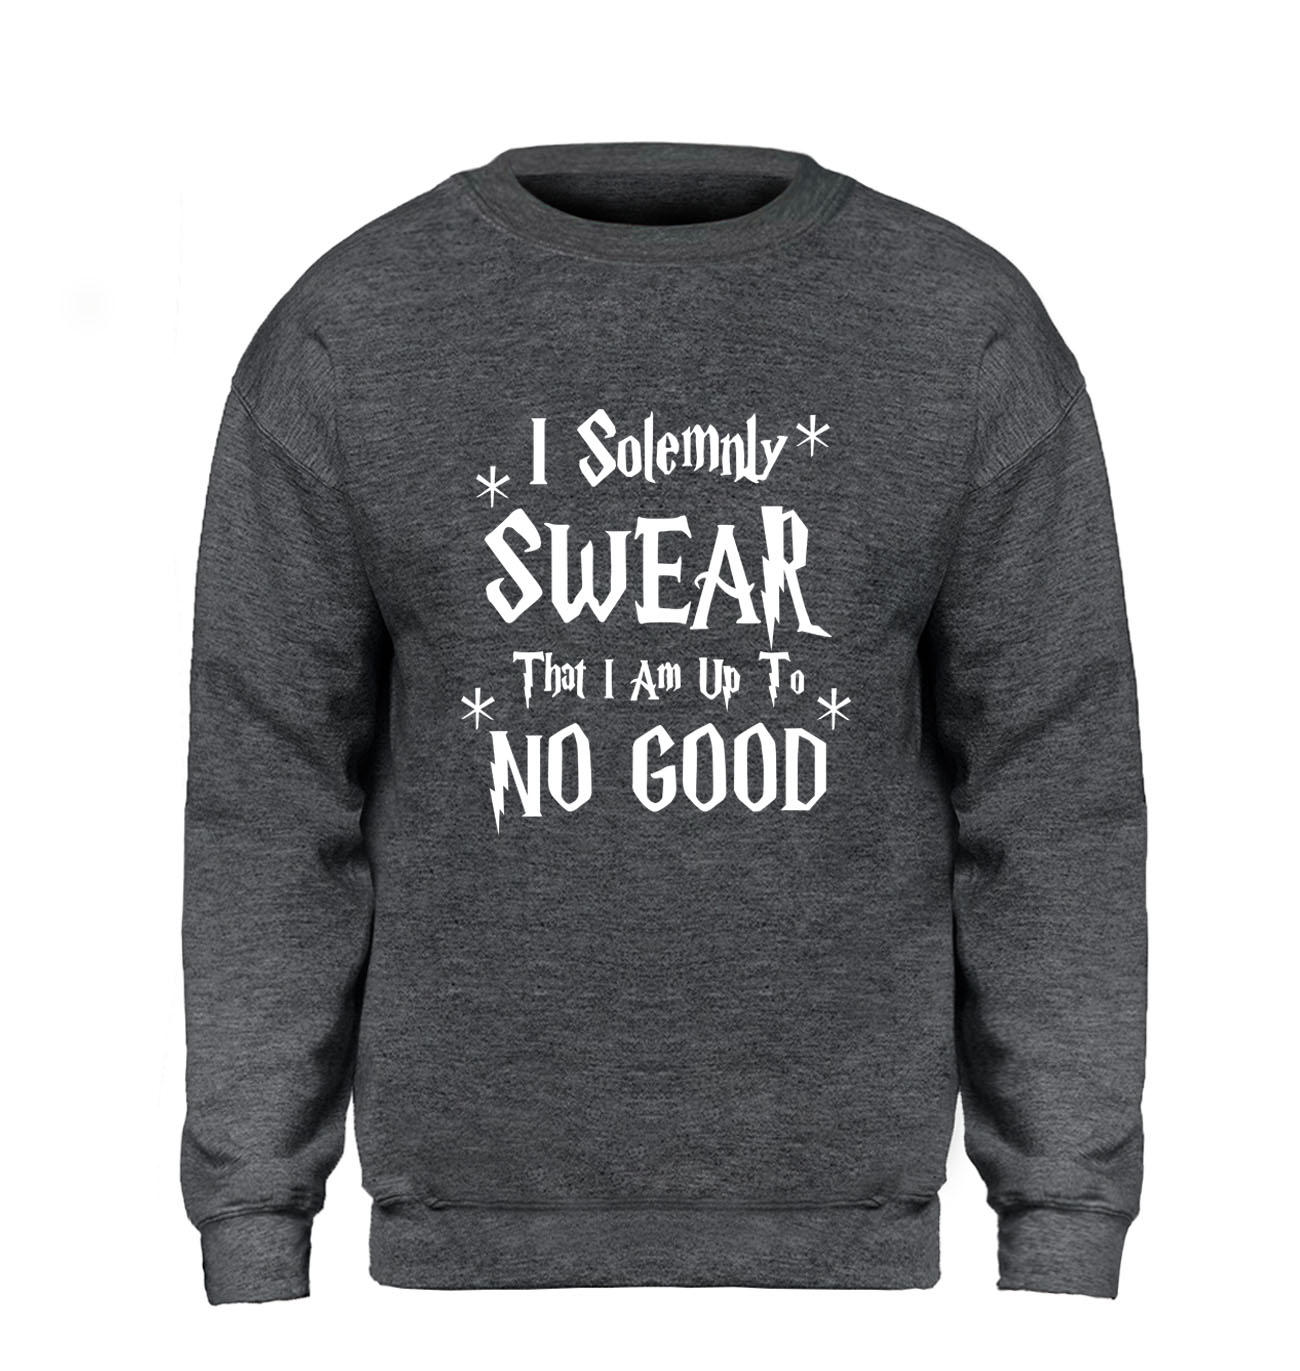 I Solemnly Swear That I Am Up To No Good Hoodie Men Fashion Sweatshirt Winter Autumn Fleece Warm Sweatshirts Mens Brand Clothing